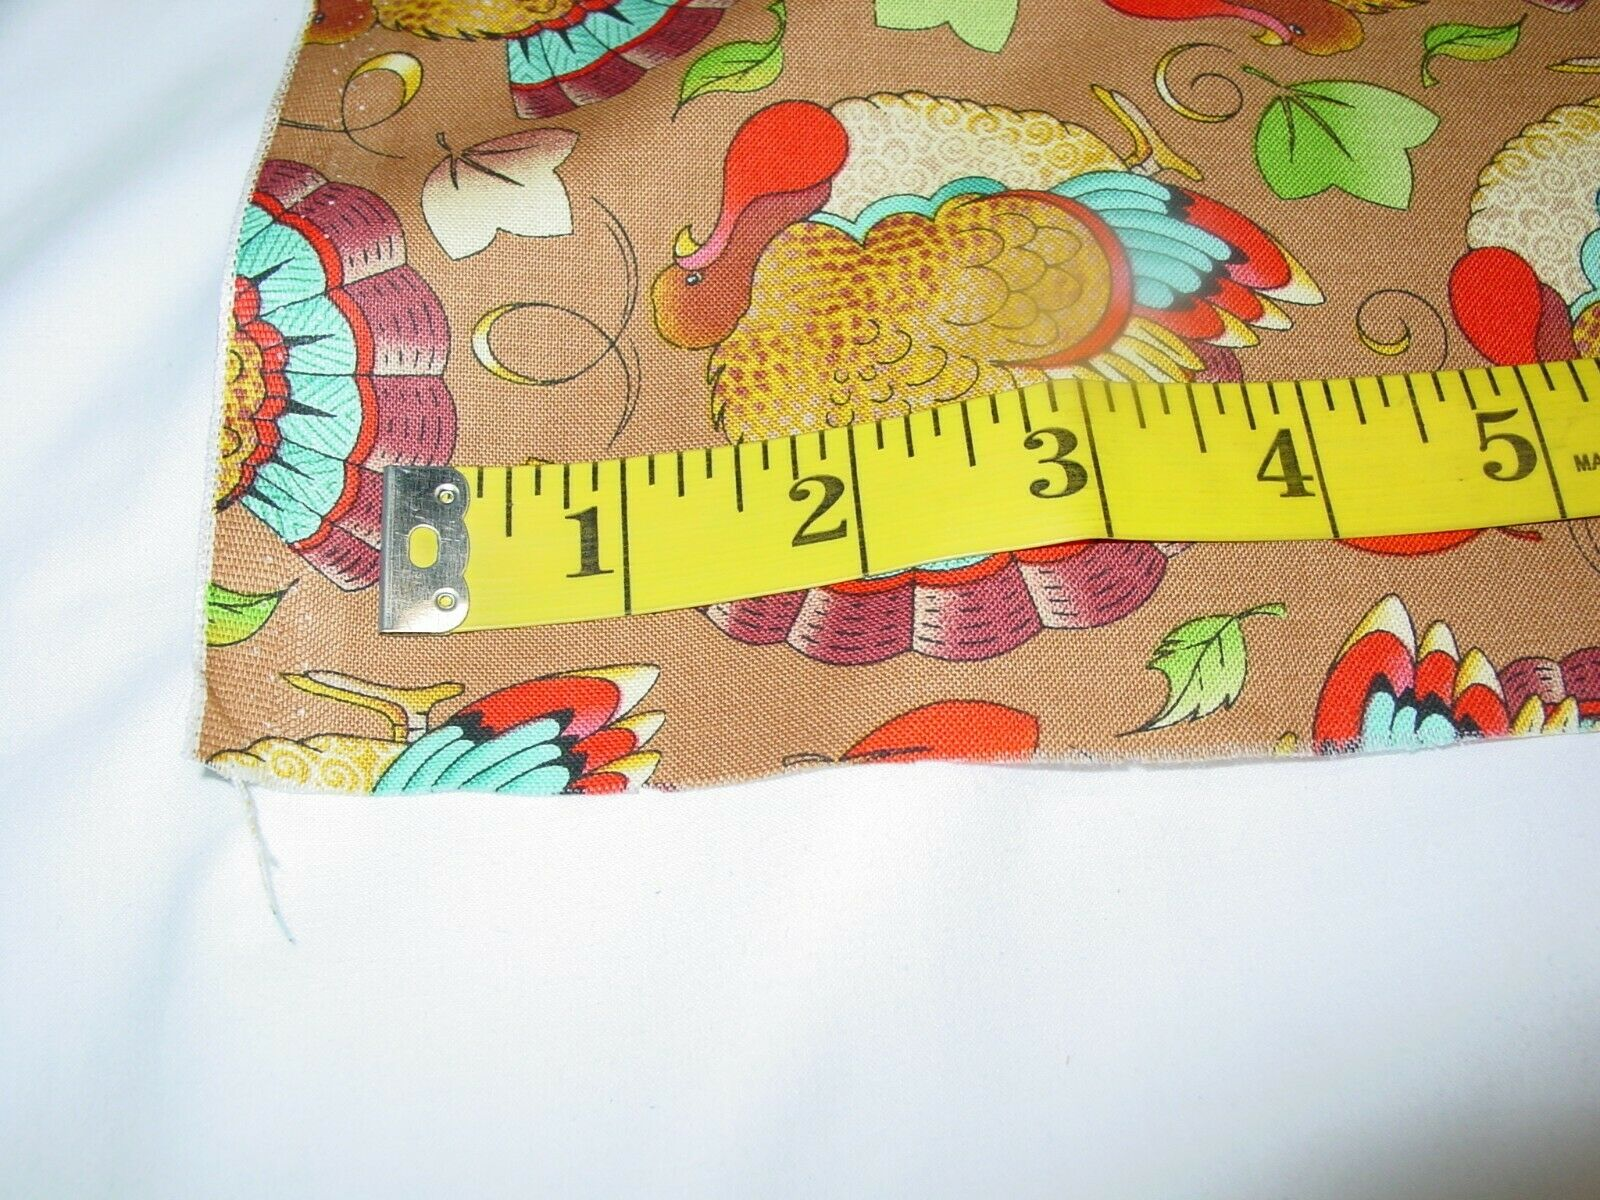 FABRIC TRADITIONS TURKEYS 100 COTTON REMNANT LENGTH 25 X WIDTH 42  - $9.50